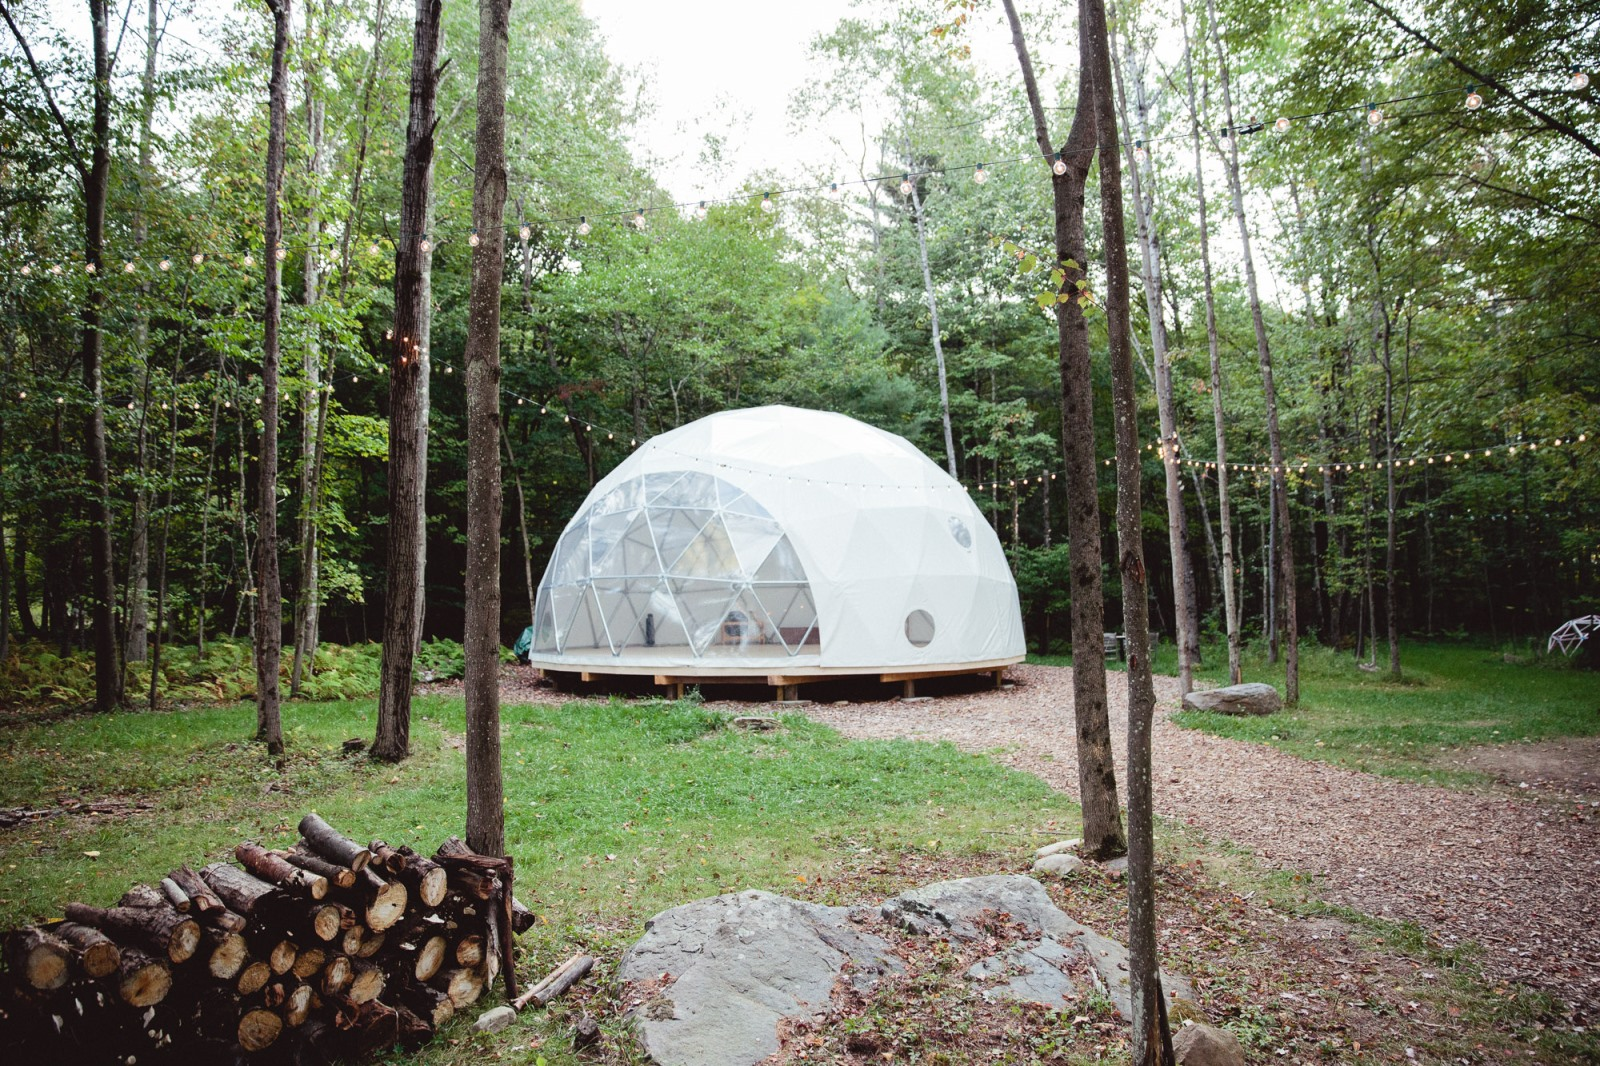 The dome is one of the features of this working fiber farm. Photo courtesy of Splacer